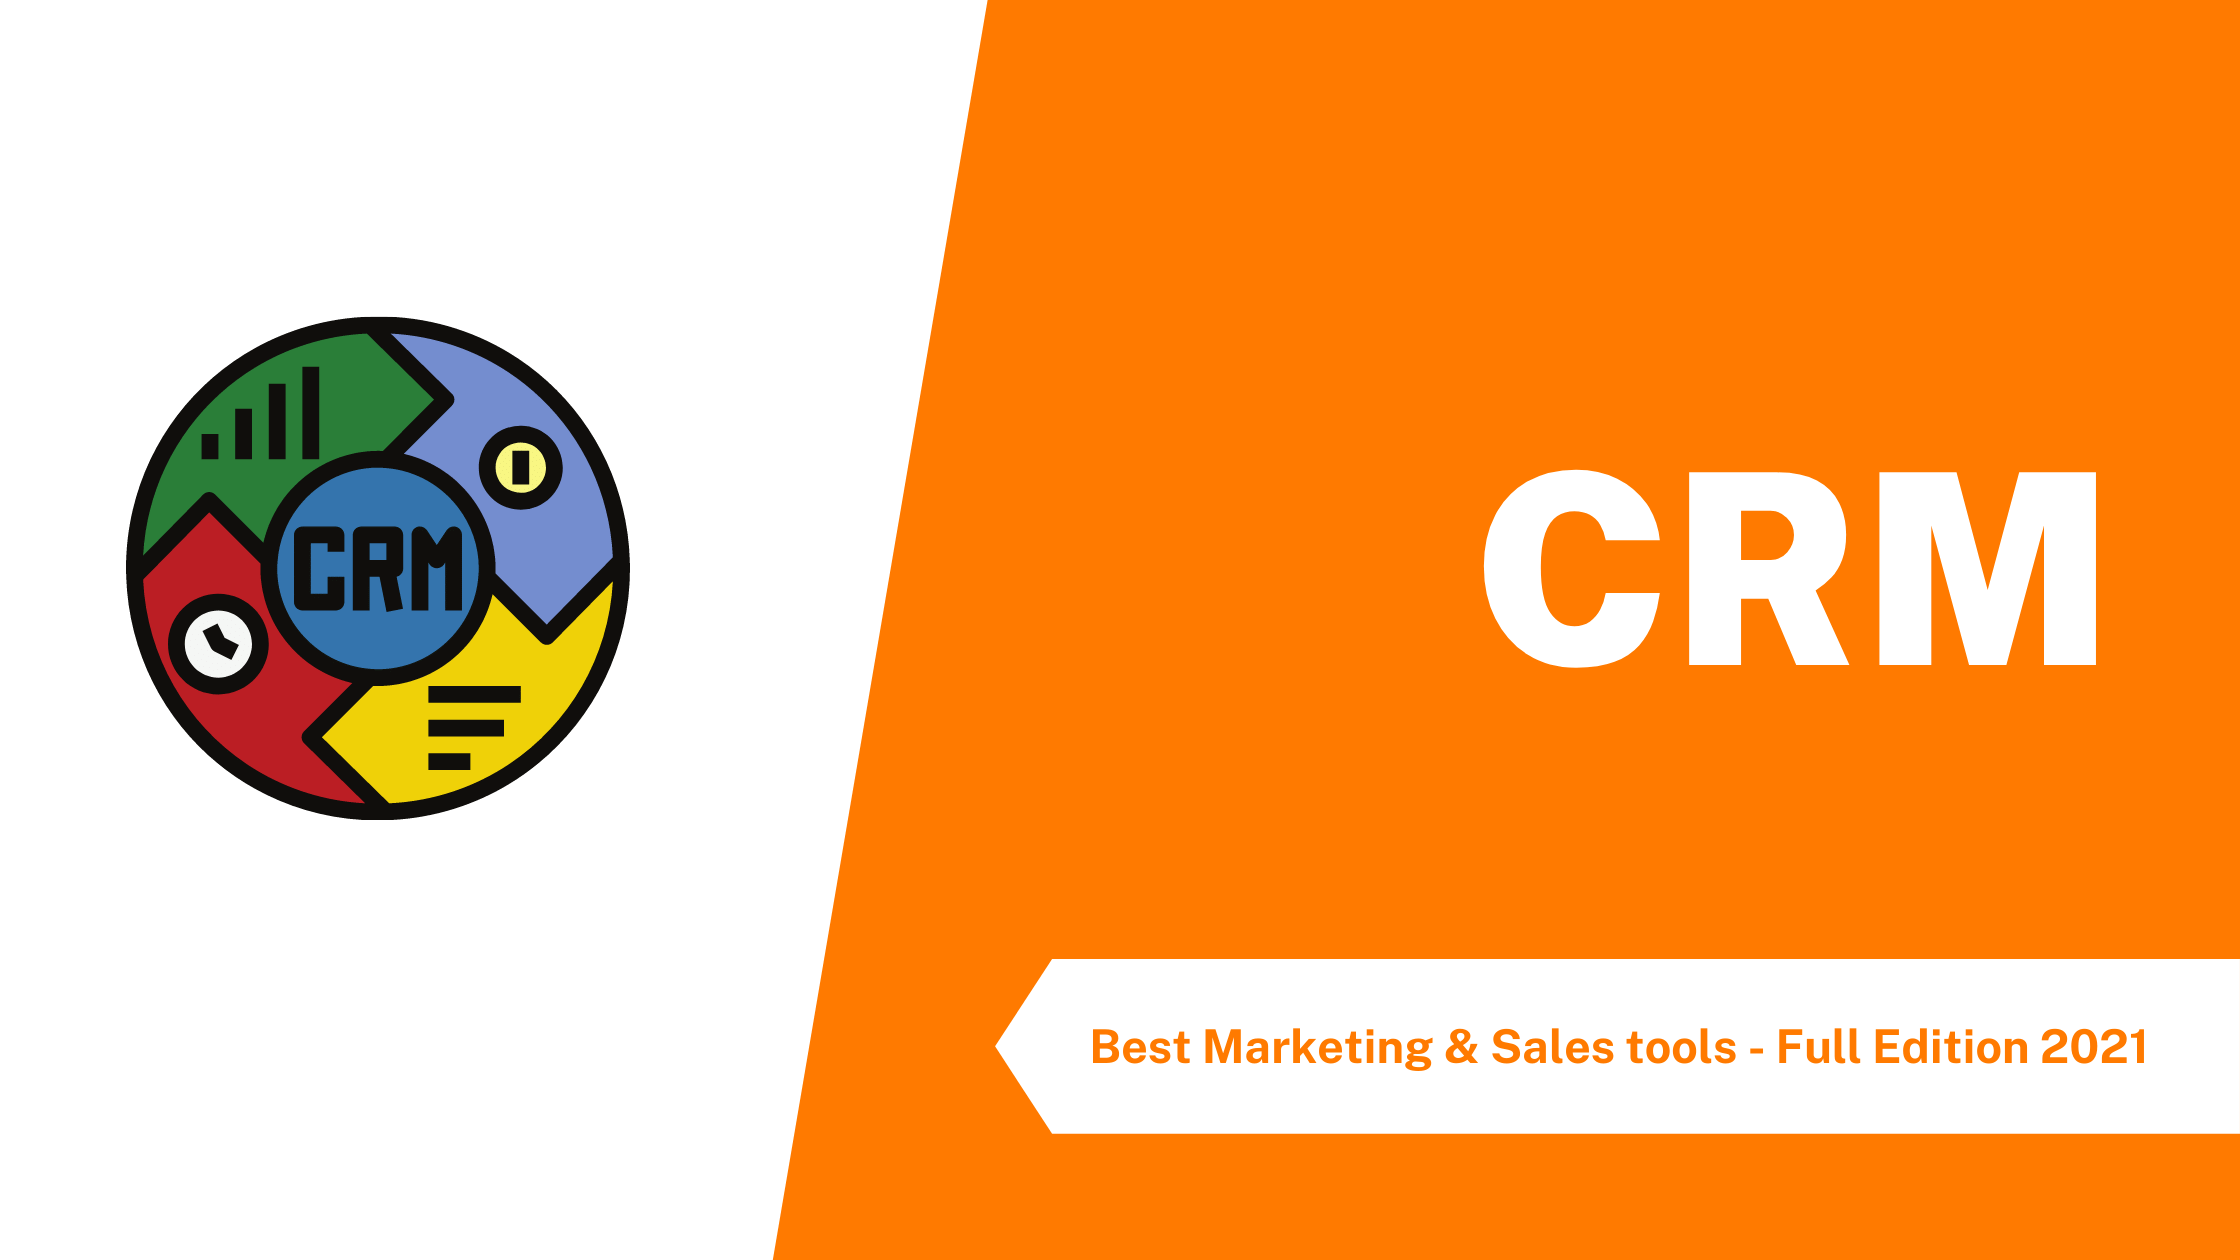 The best CRM systems for businesses